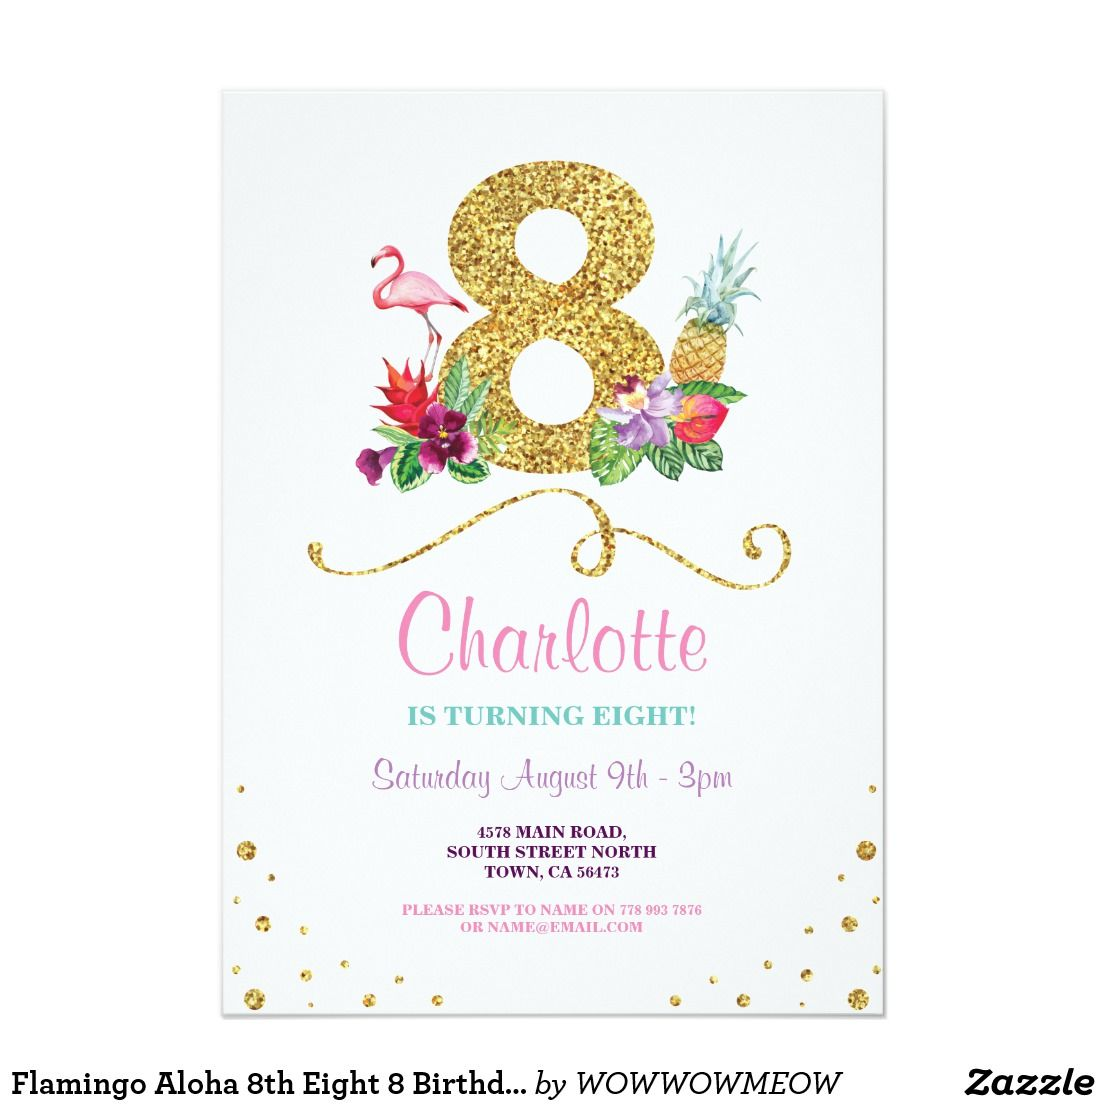 Flamingo aloha 8th eight 8 birthday party invite happy birthday flamingo aloha 8th eight 8 birthday party invite flamingo 8th birthday party bright invite change the text to suit your party back print included filmwisefo